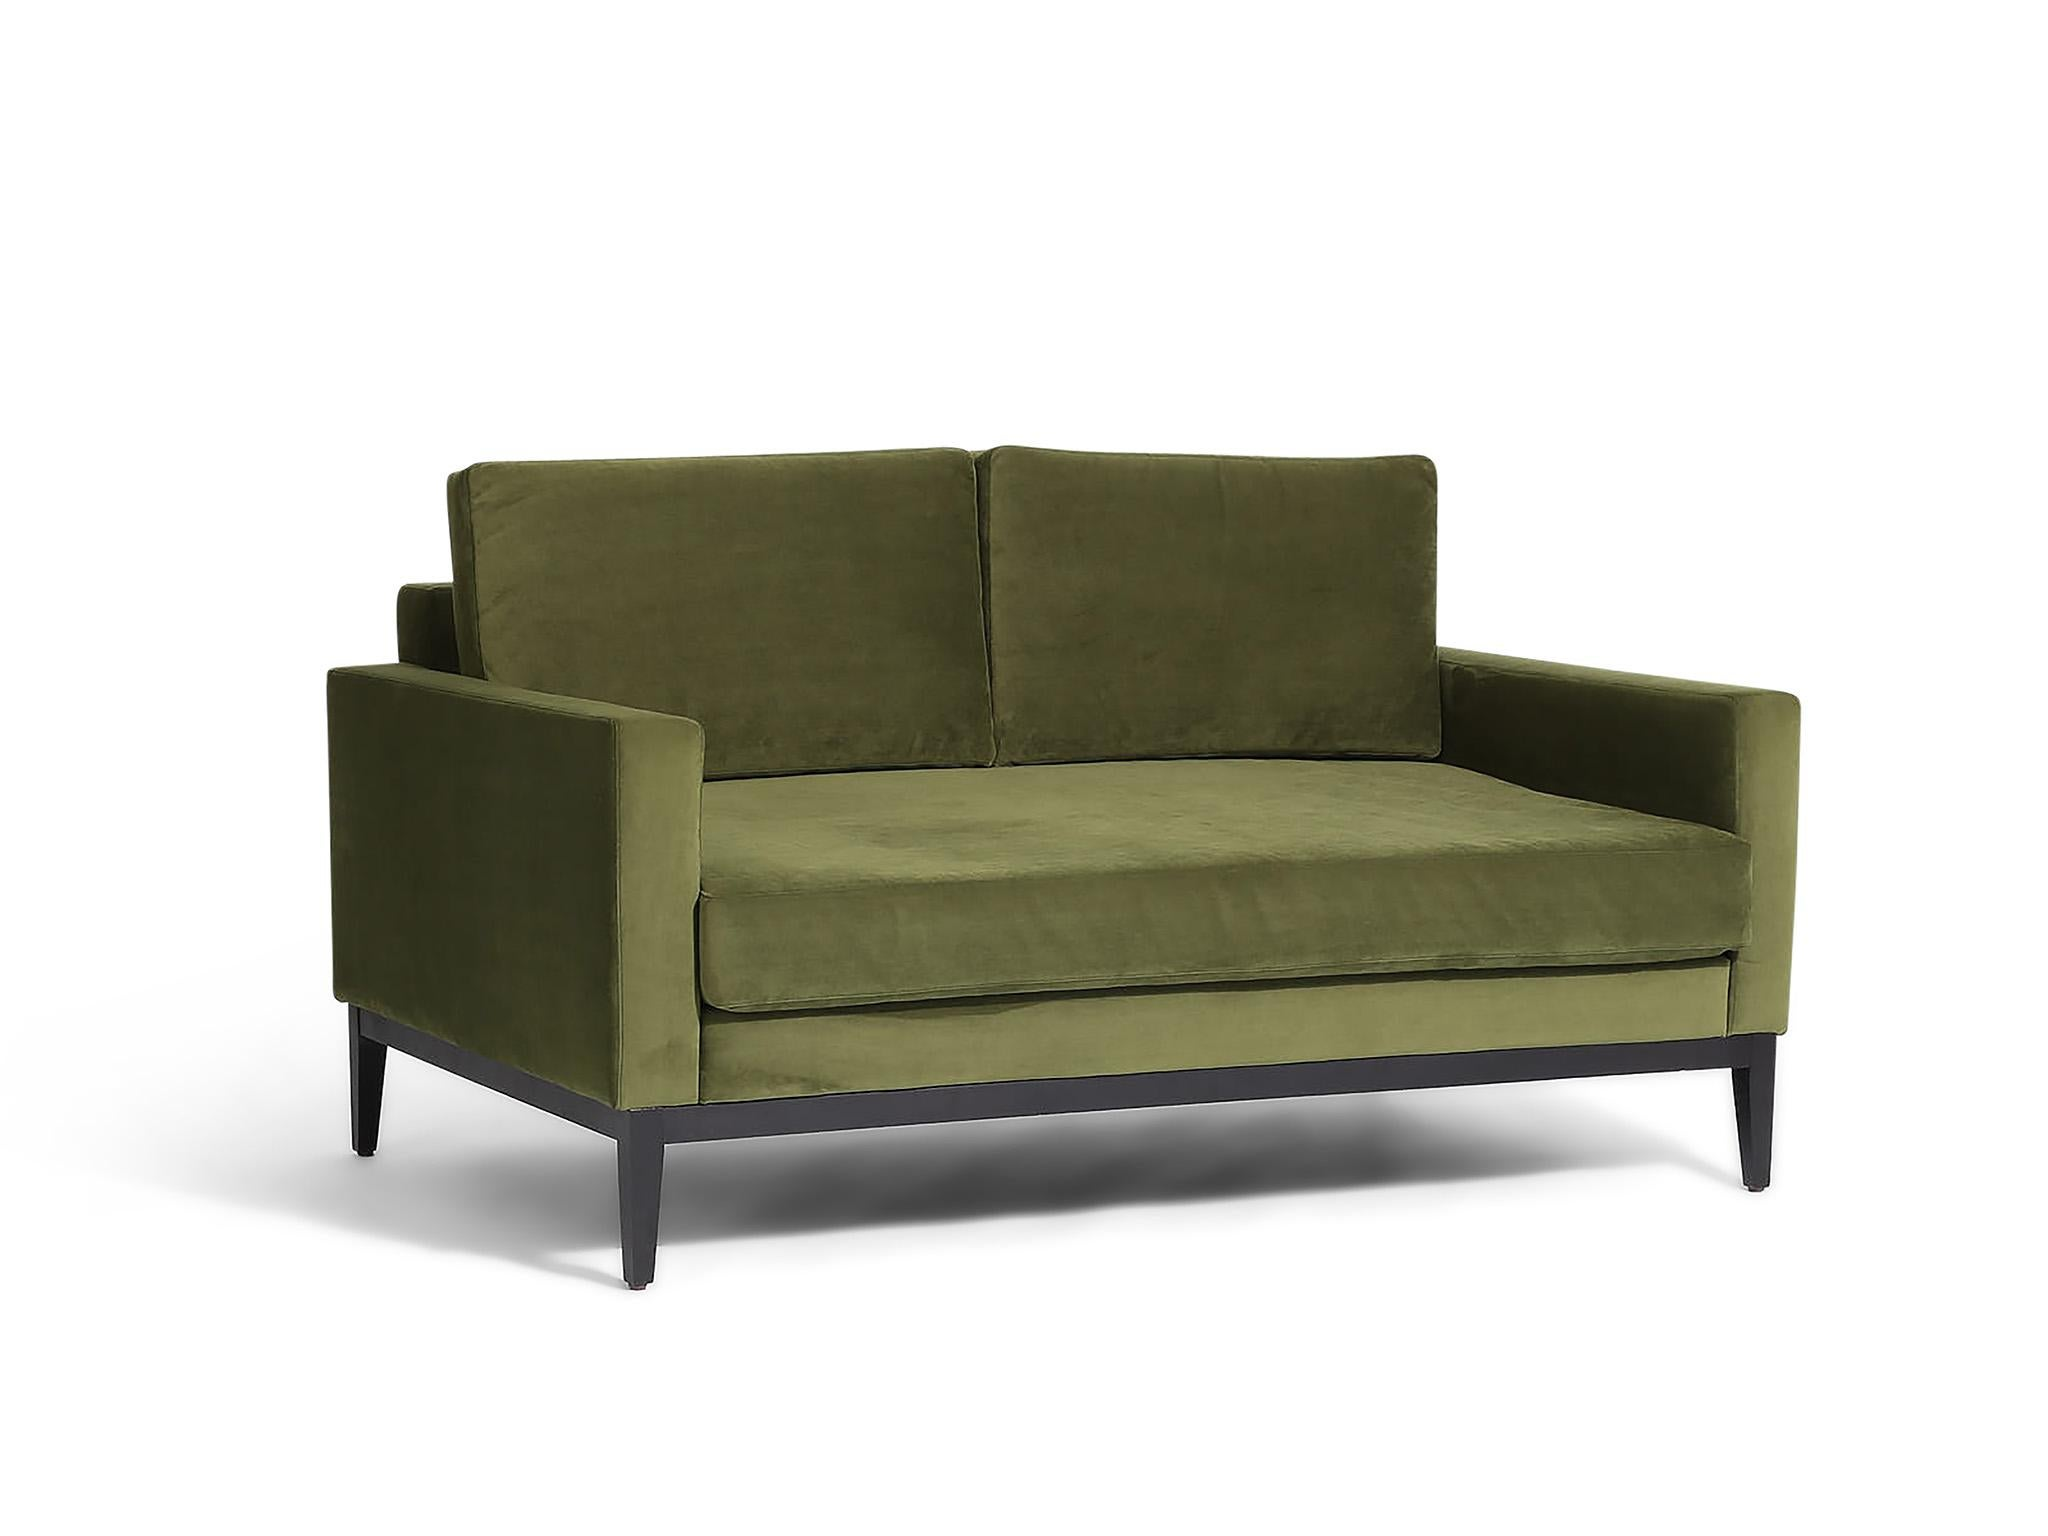 6 Best 2 Seater Sofas The Independent Olive House Sofabed Fabric Lux Grey Lombok Karlsson Two Sofa In Vintage Velvet Jade 1495